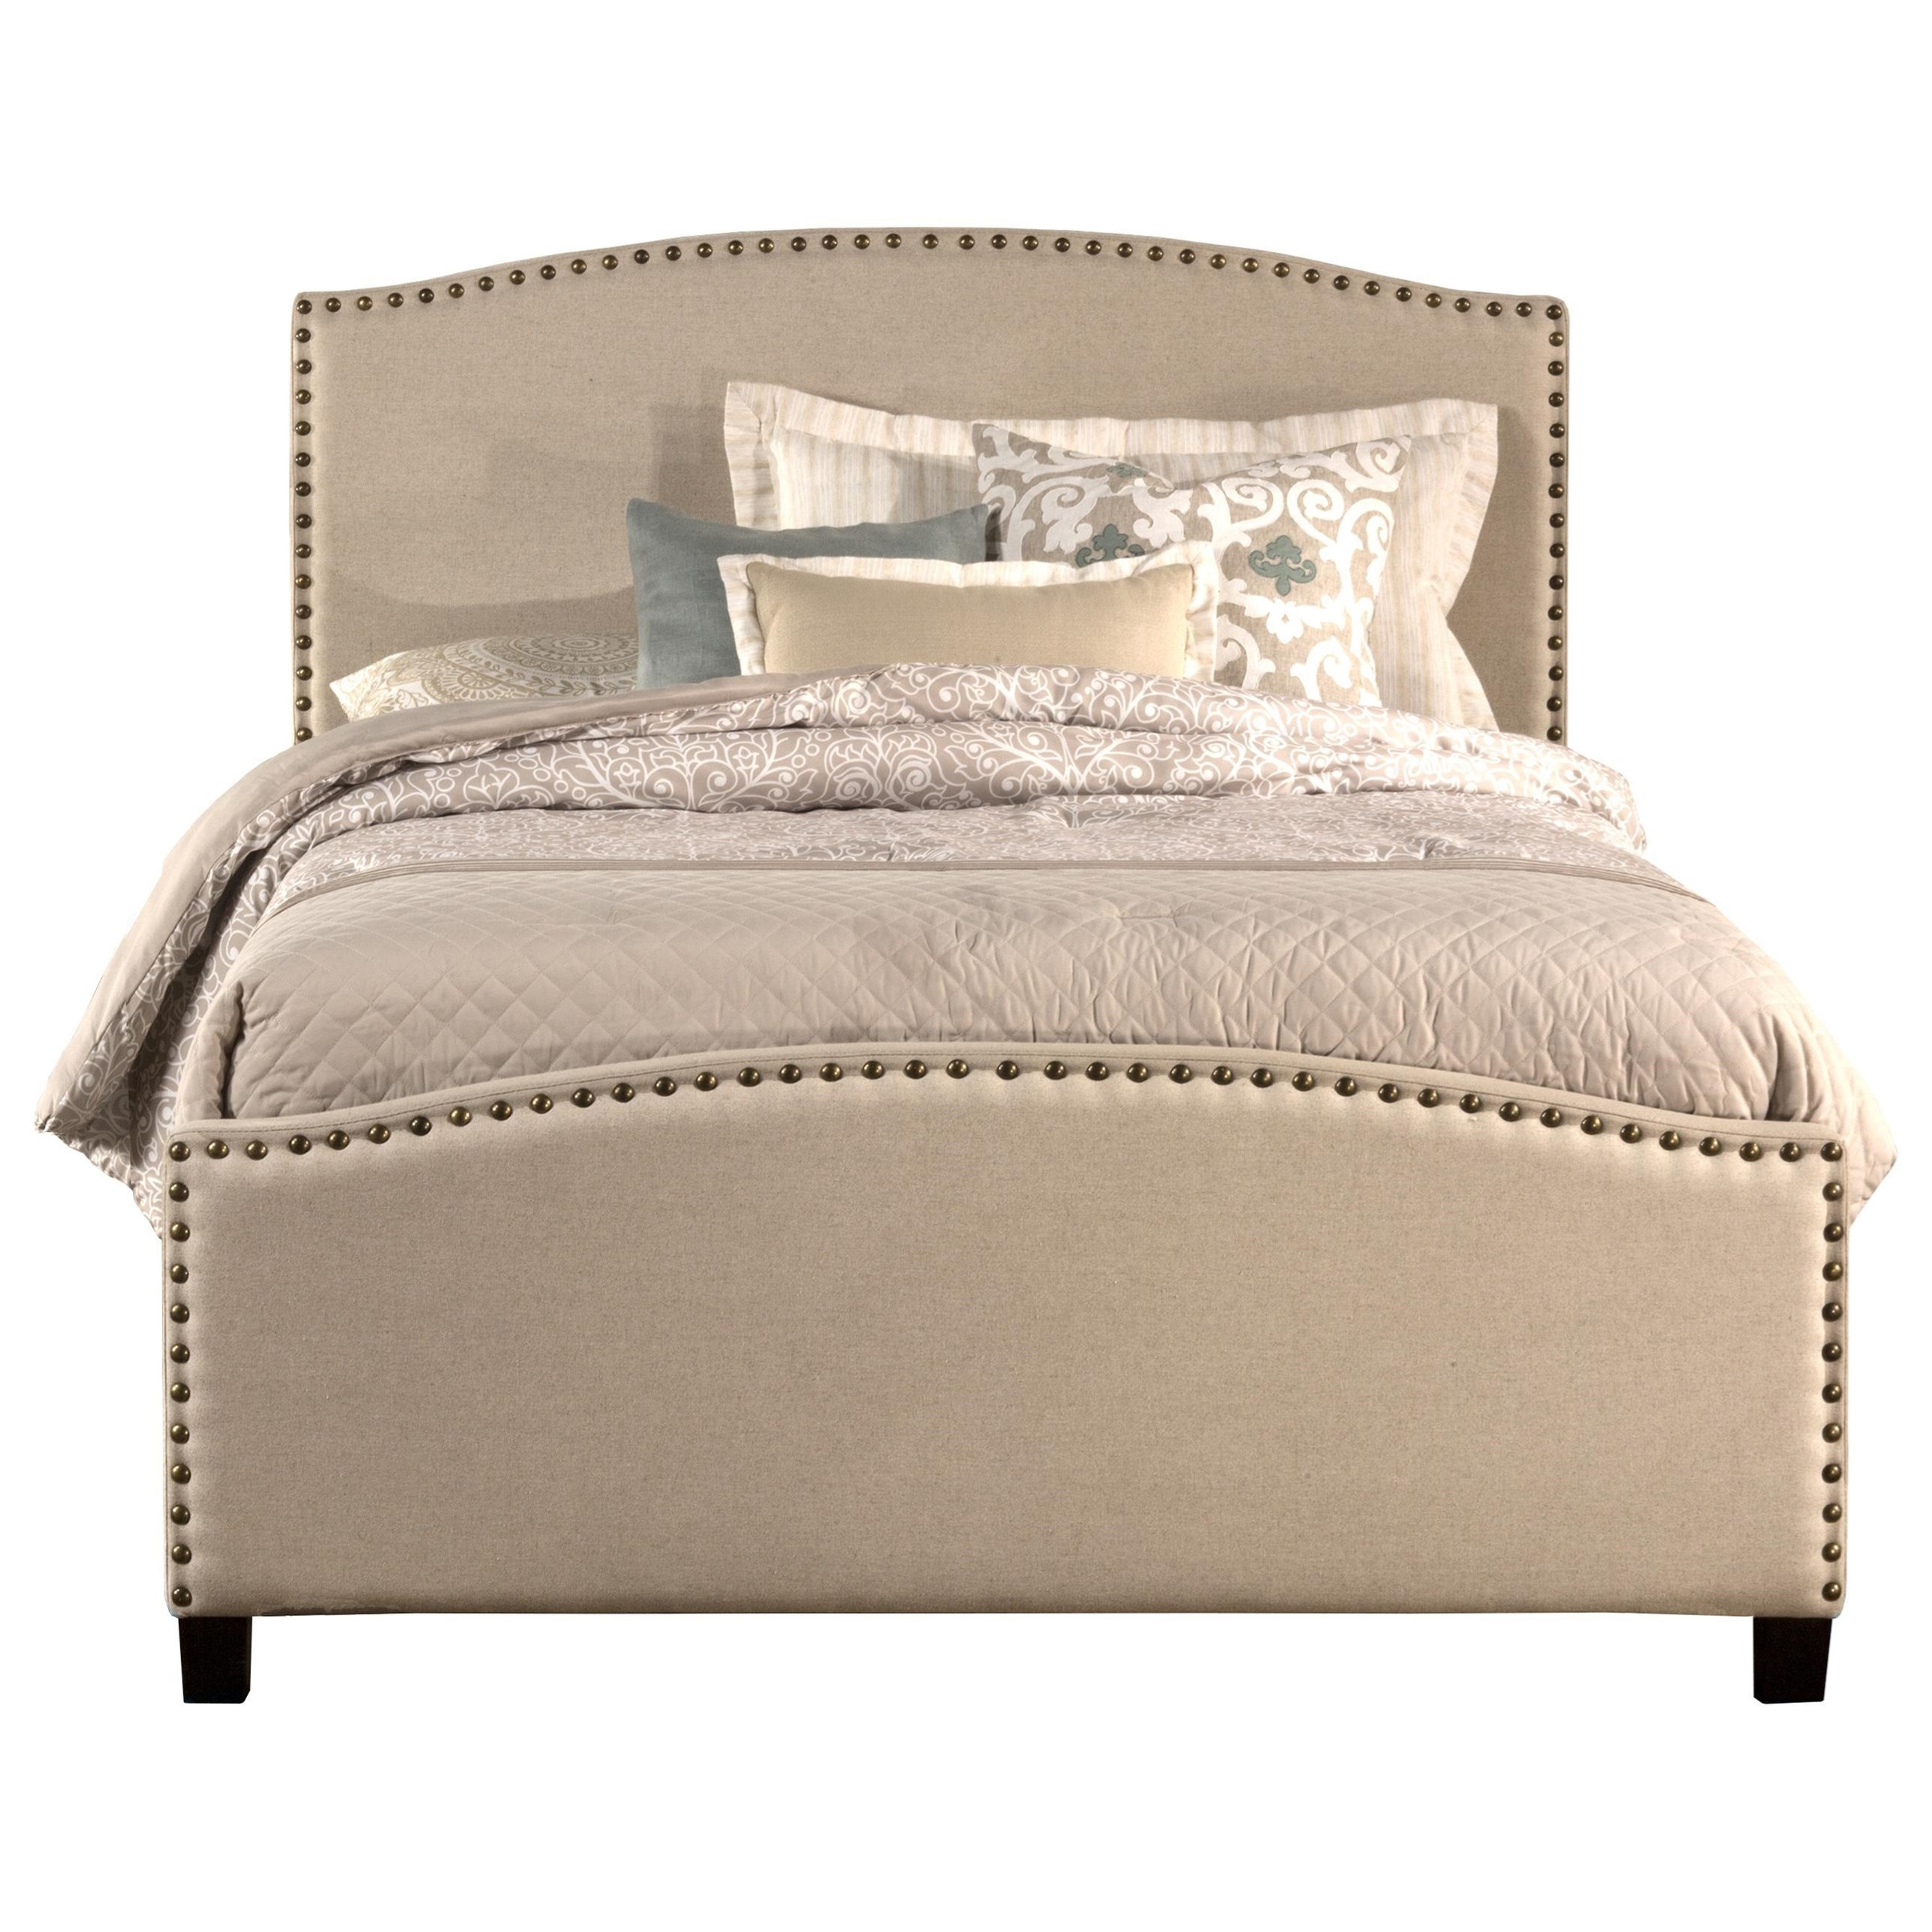 Kerstein Full Bed Set Rails Included at Ruby Gordon Home